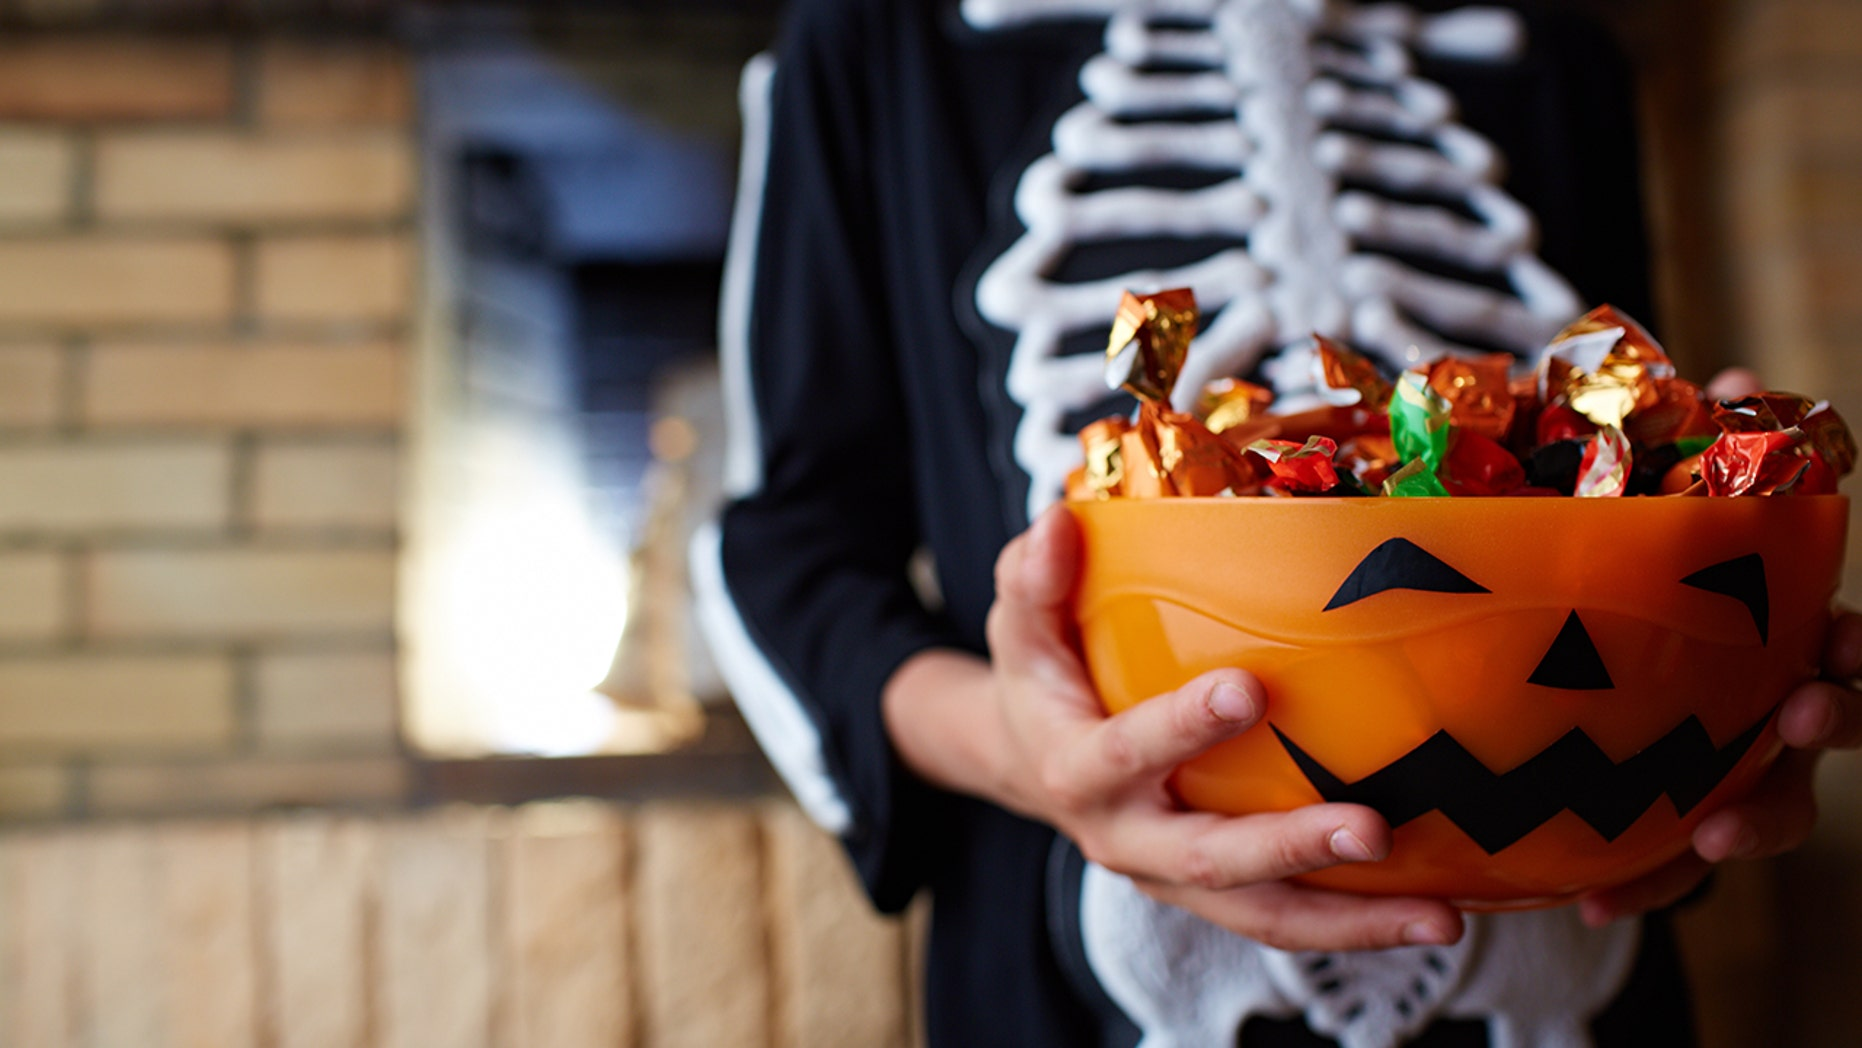 Trick-or-treat. These states seem to prefer the treat, consuming the most calories on Halloween